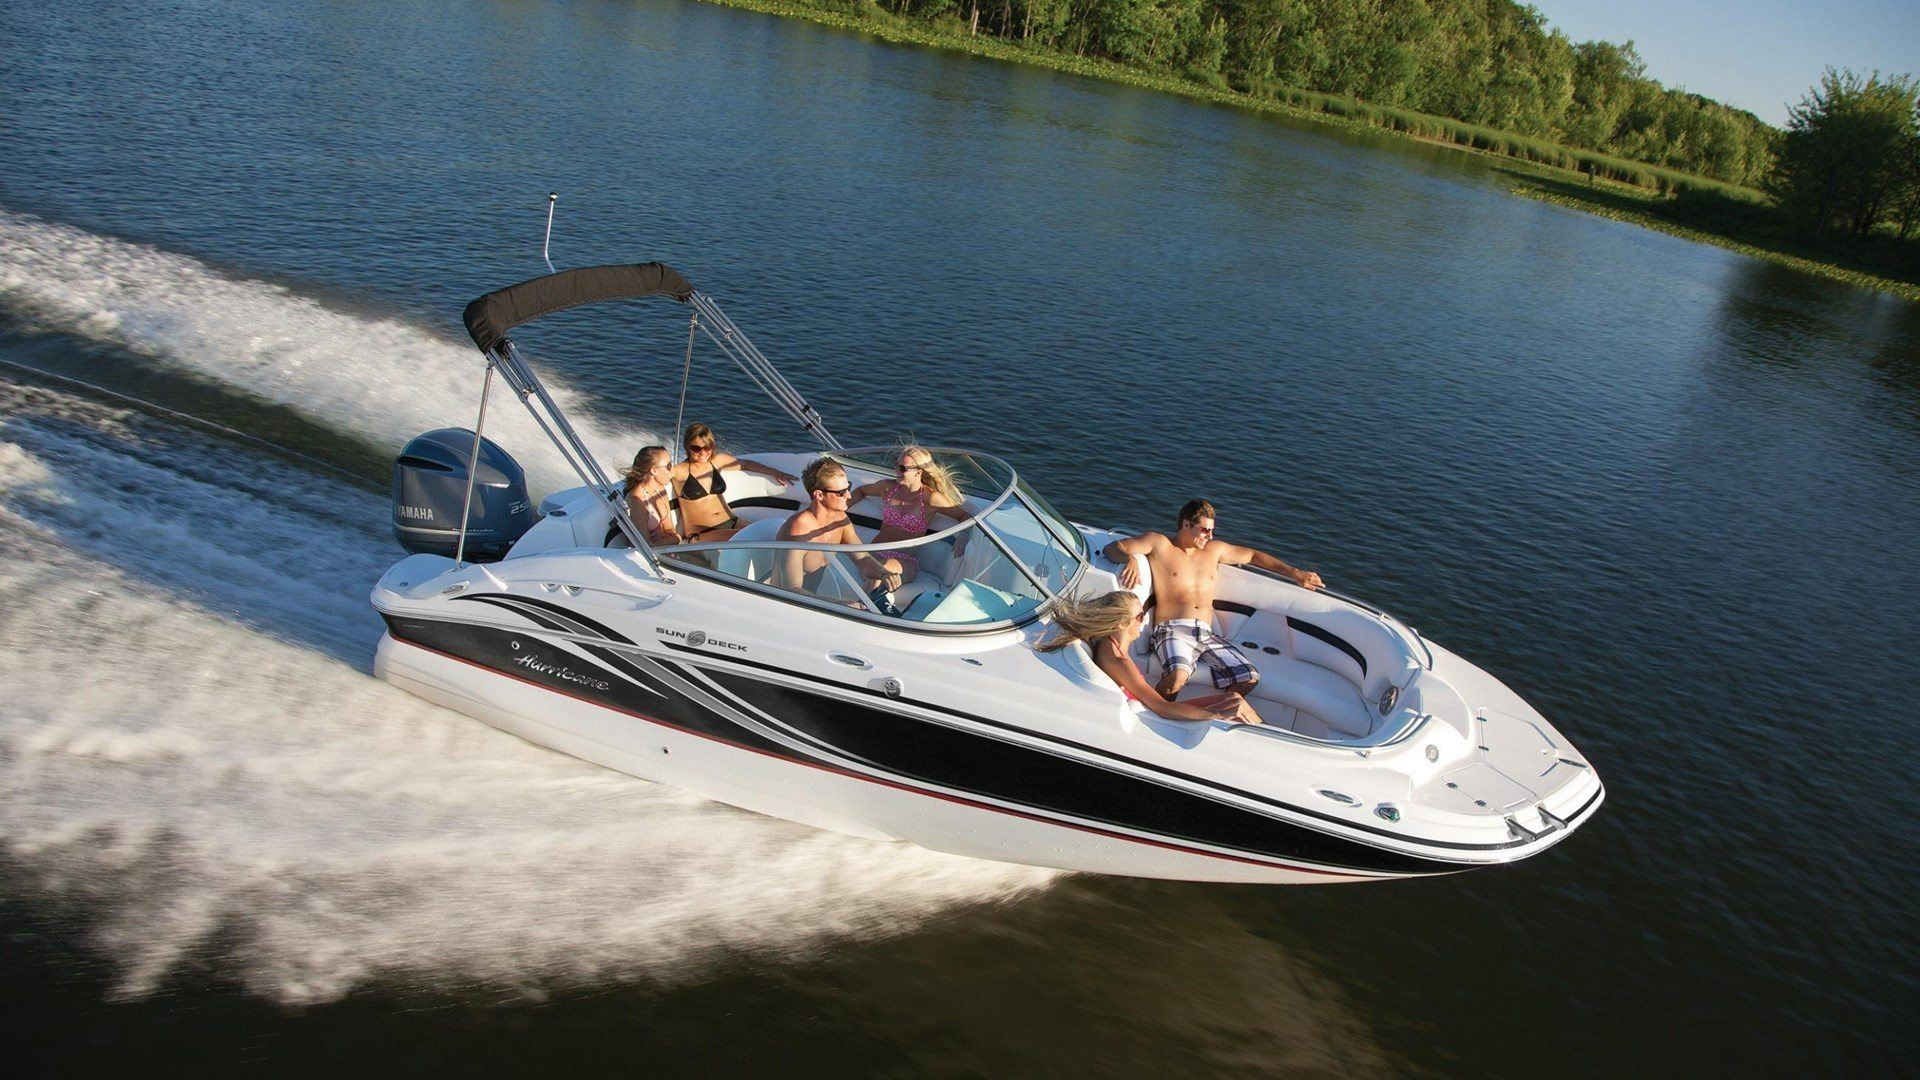 New & Used Boats Lewisville, TX | Pontoon Boats, Deck Boats